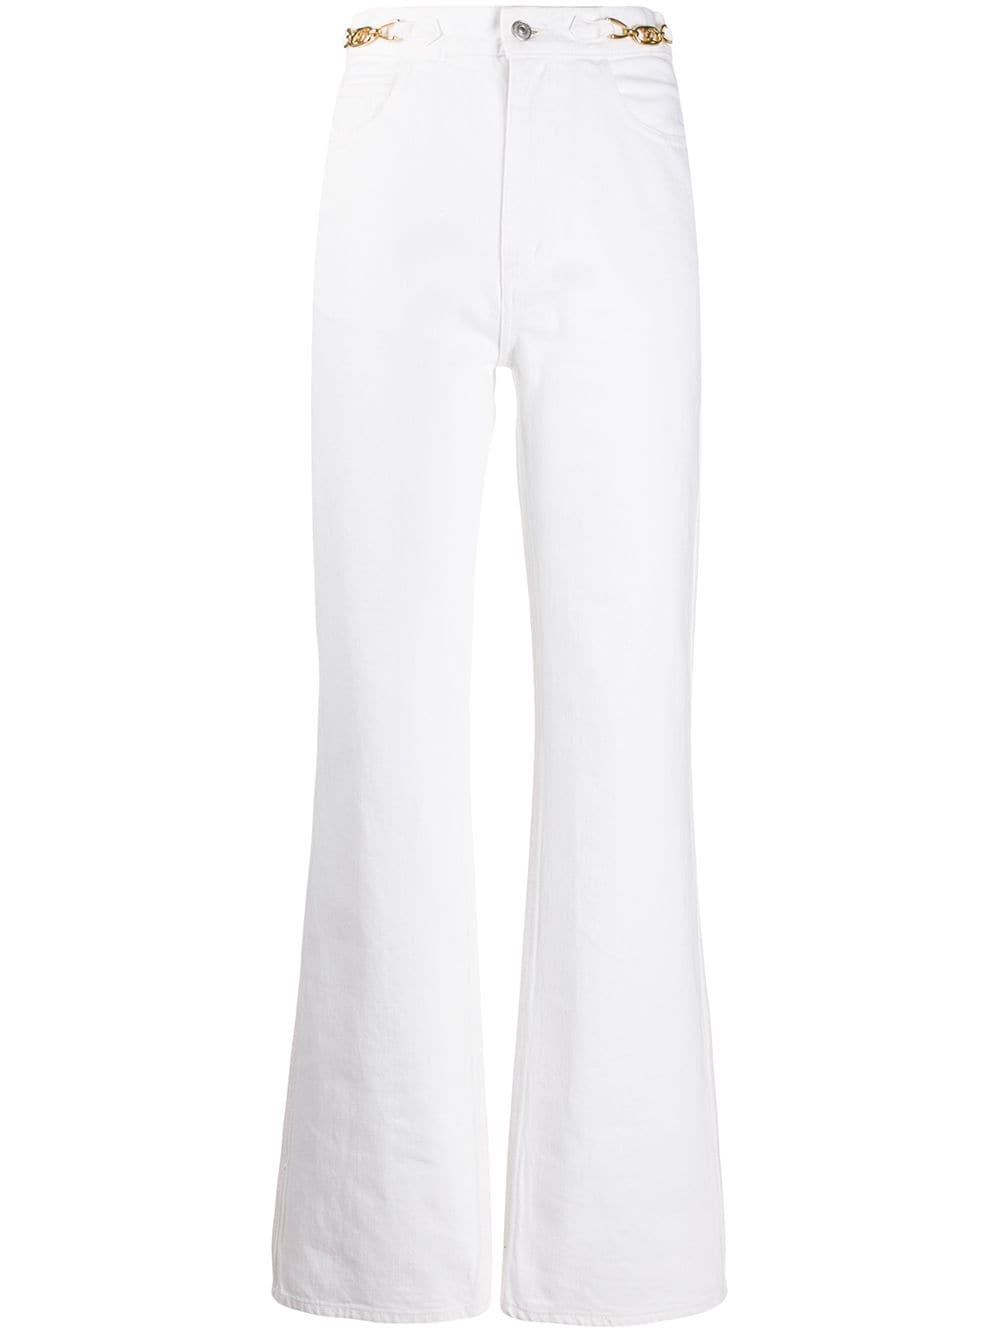 White cotton high rise flared jeans from Celine featuring a high rise, a waistband with belt loops,